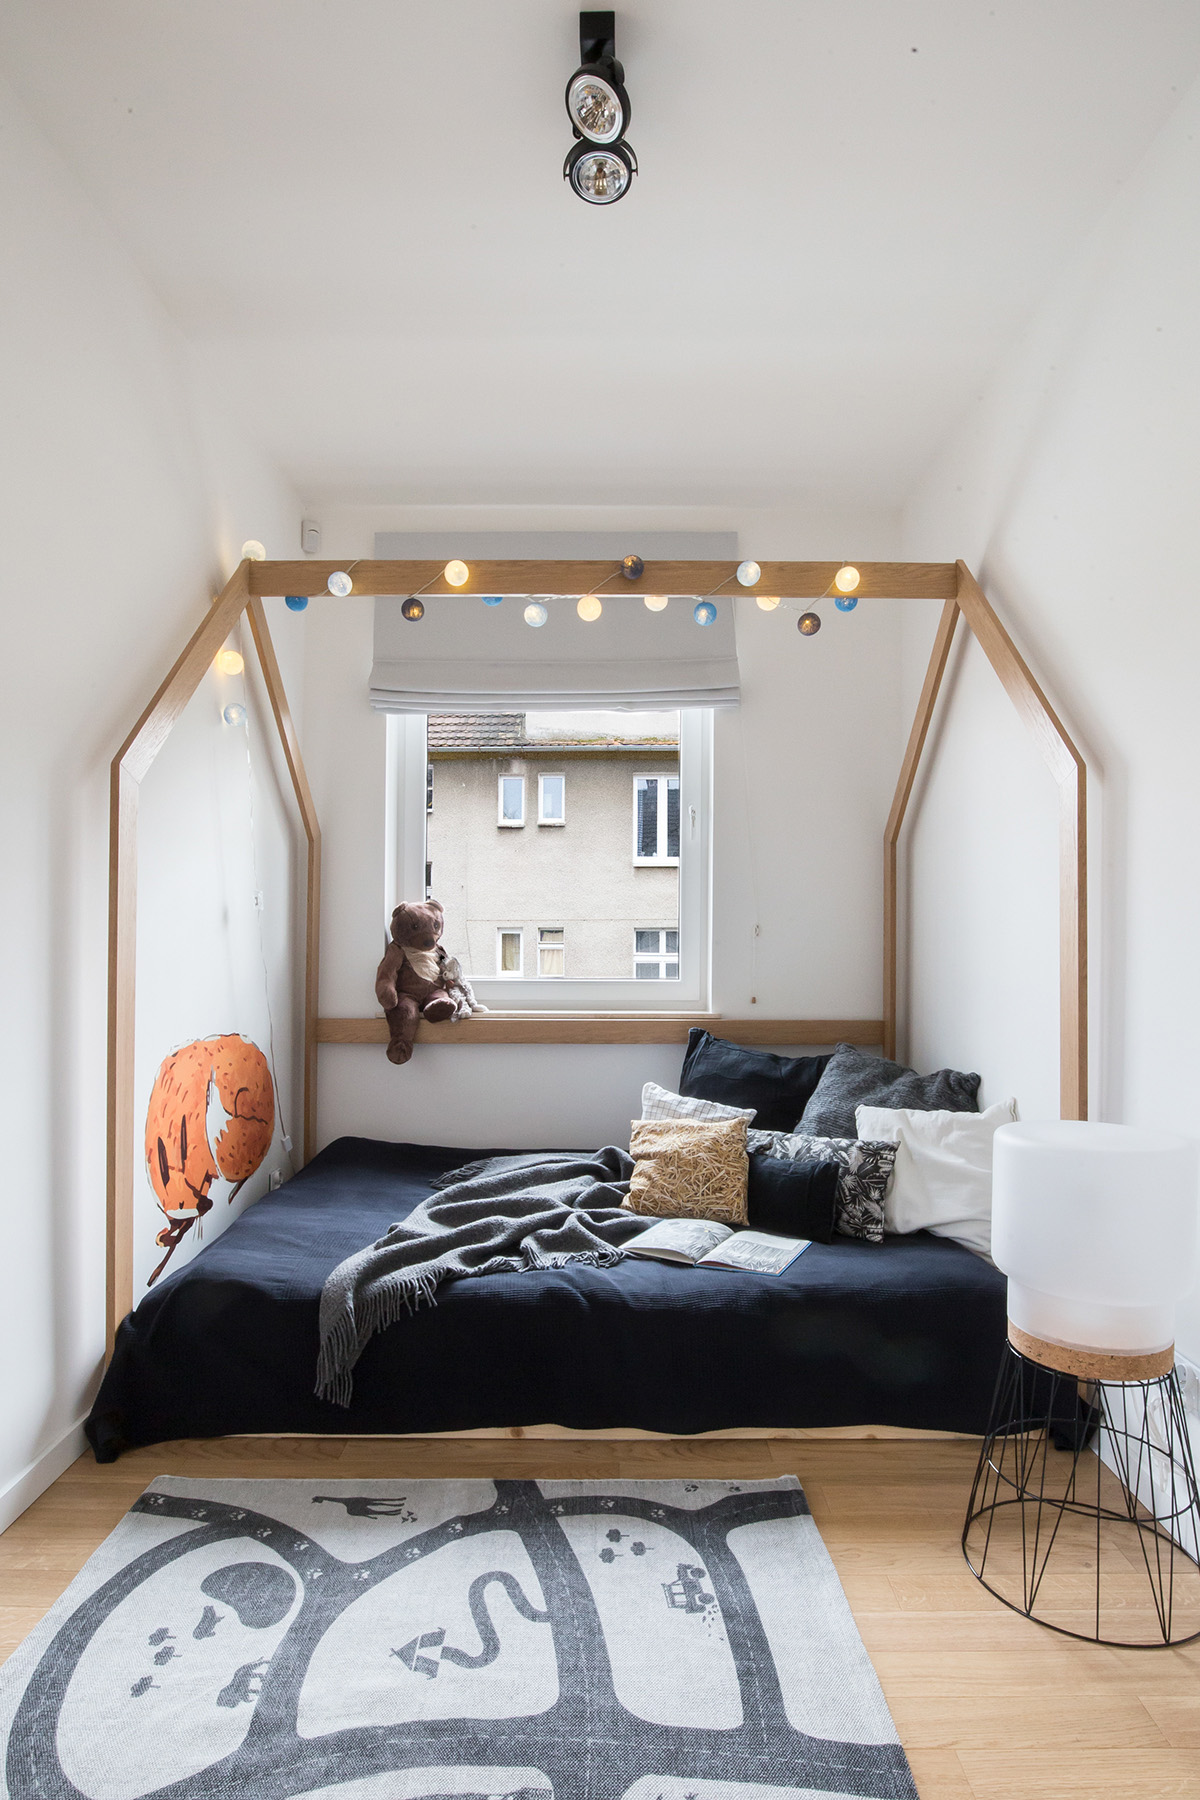 Scandinavian Style Interior With Pink And Blue Accents images 9